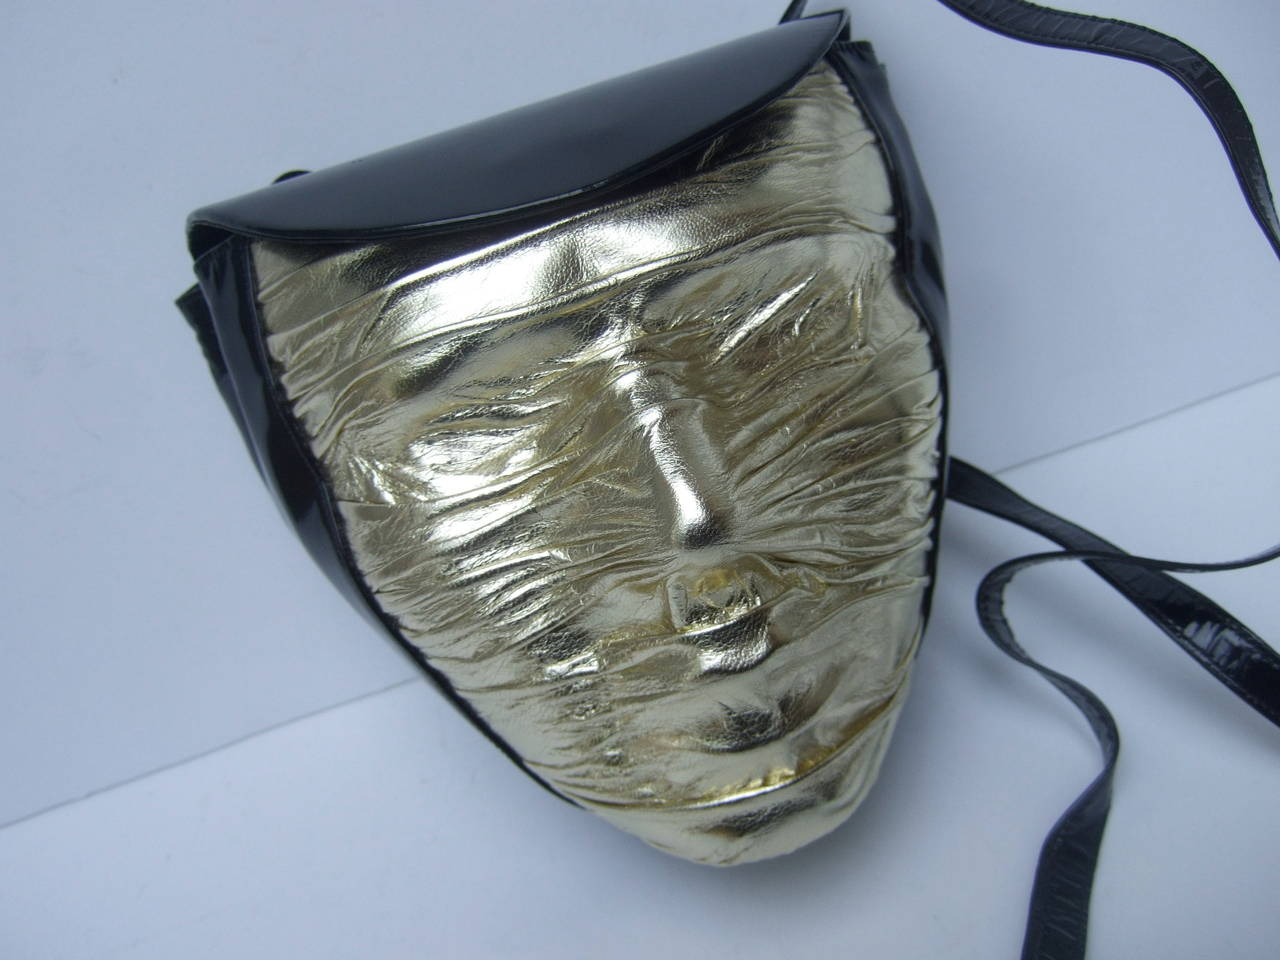 Gray Charles Jourdan Paris Avant-Garde Mummified Handbag c 1980s For Sale